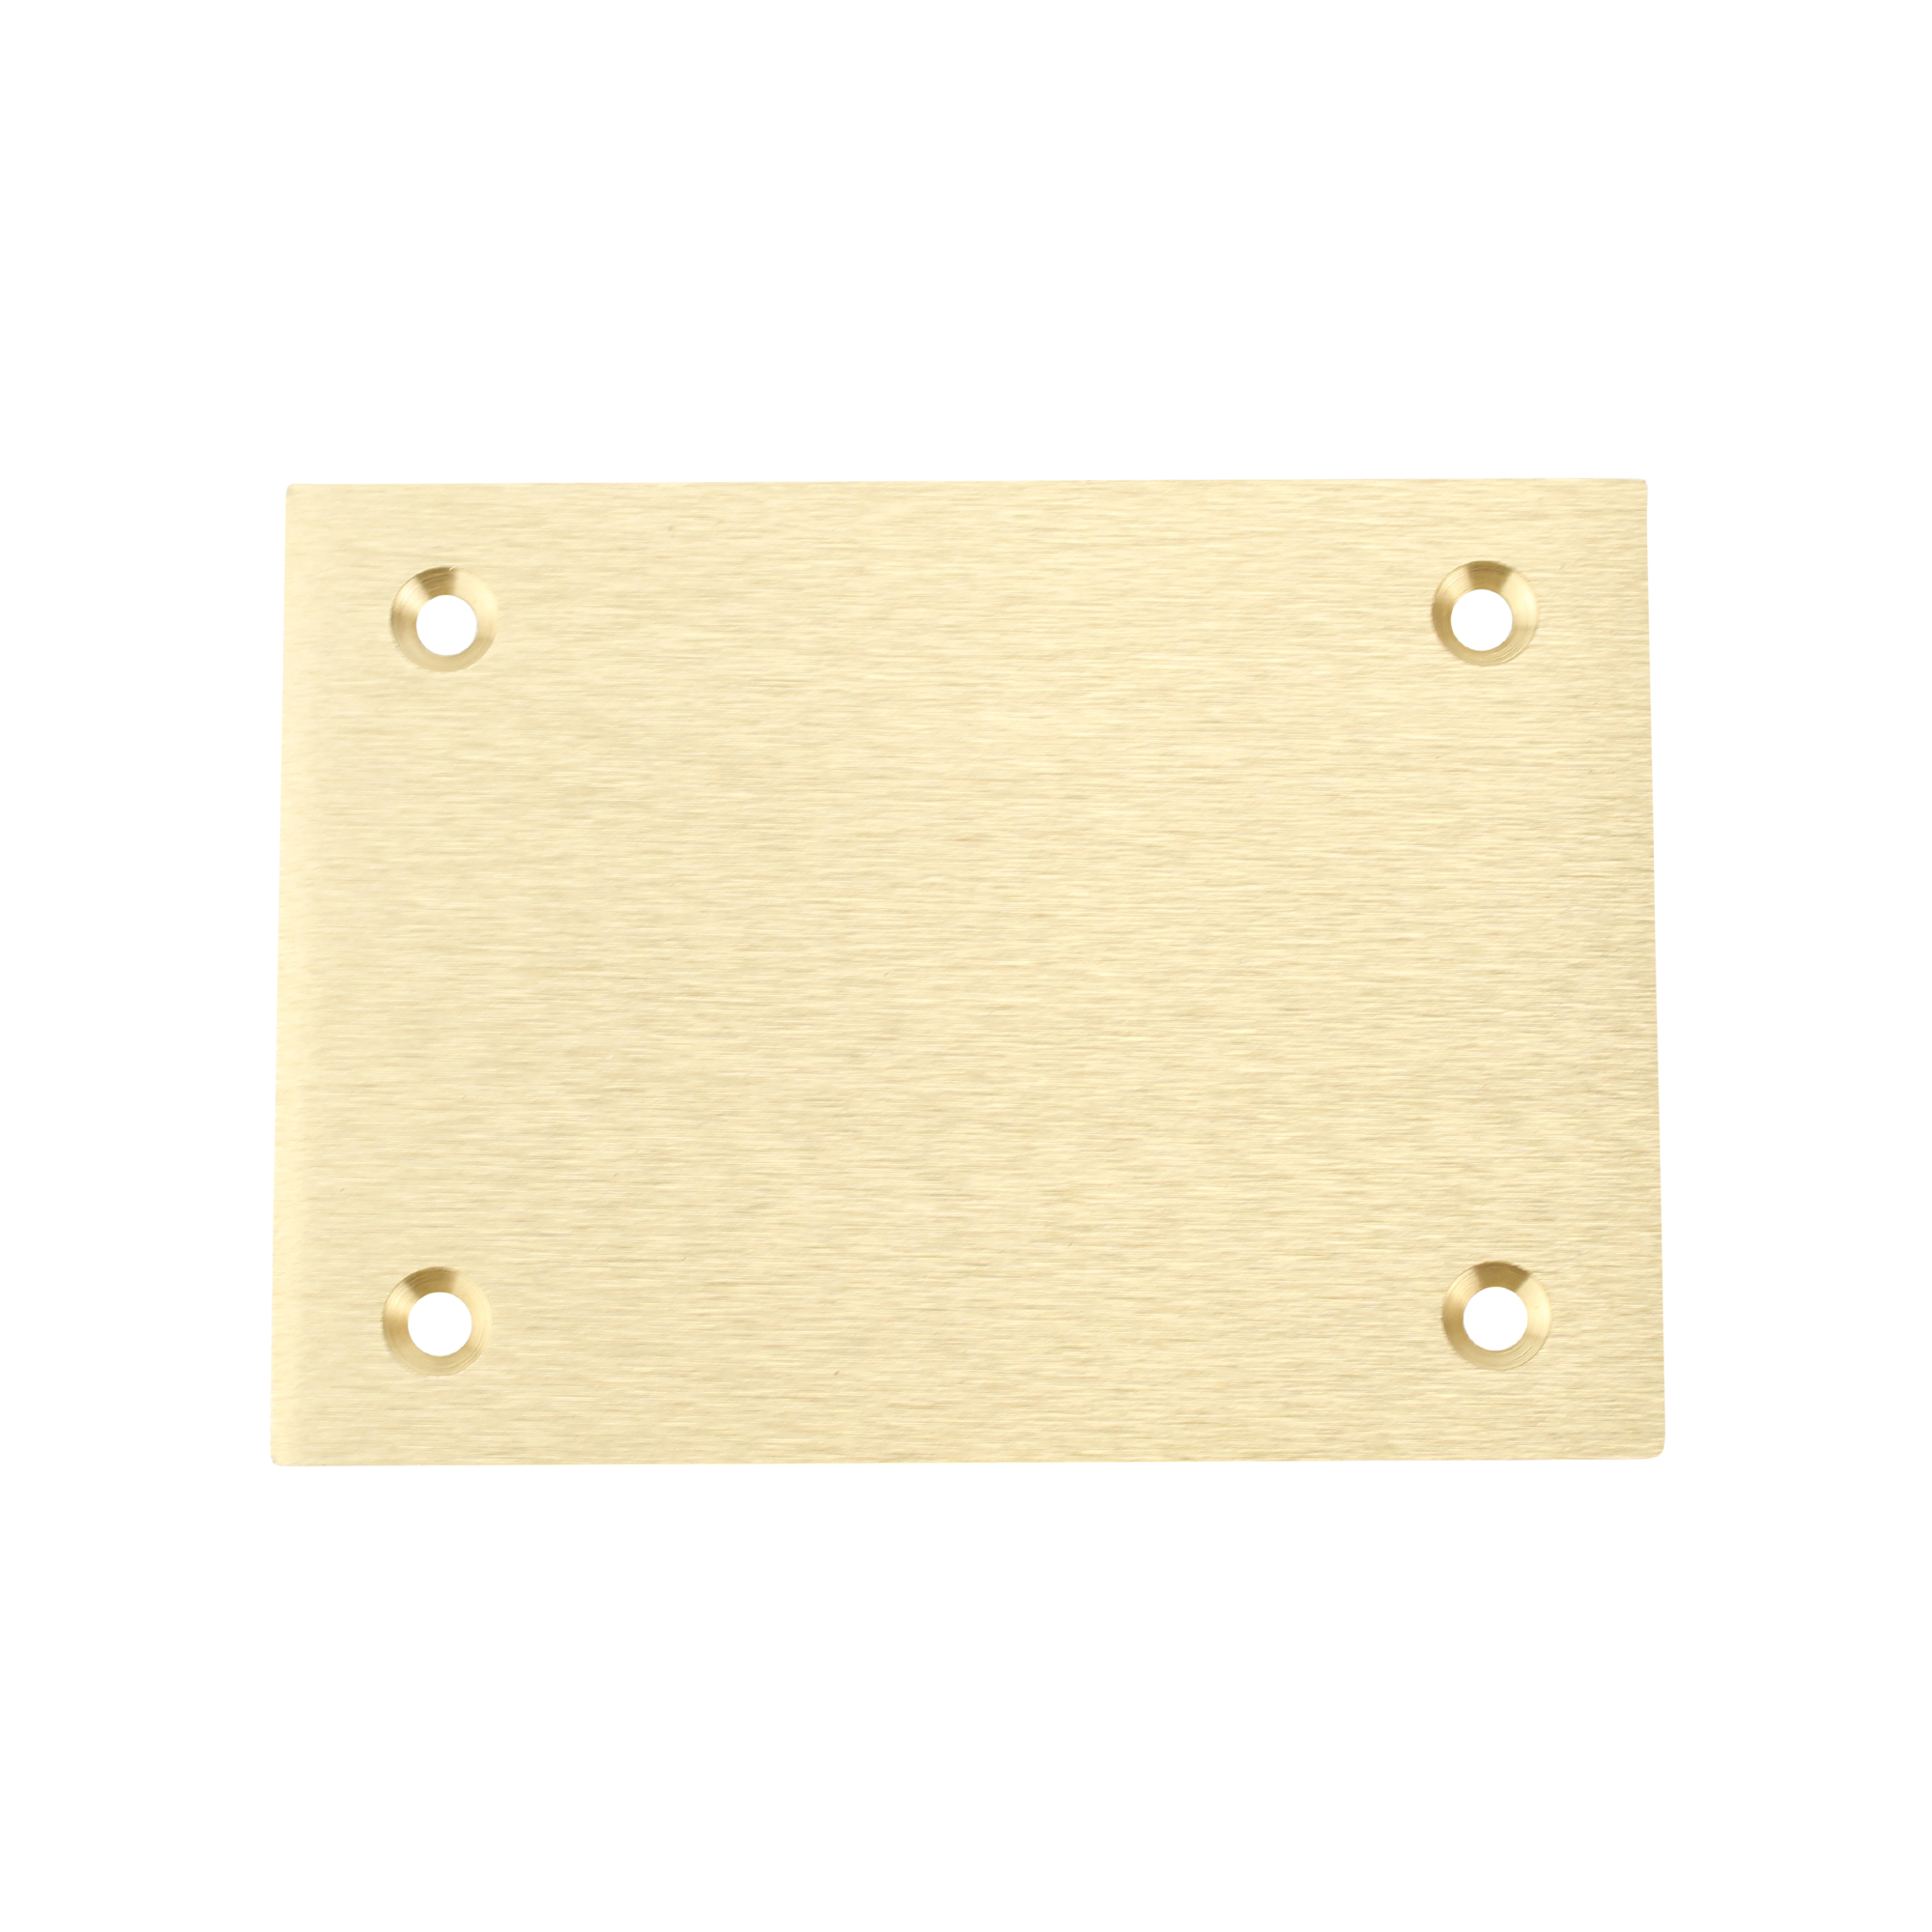 Hubbell S3813 Brass Round Floor Box Rectangle Blank Cover